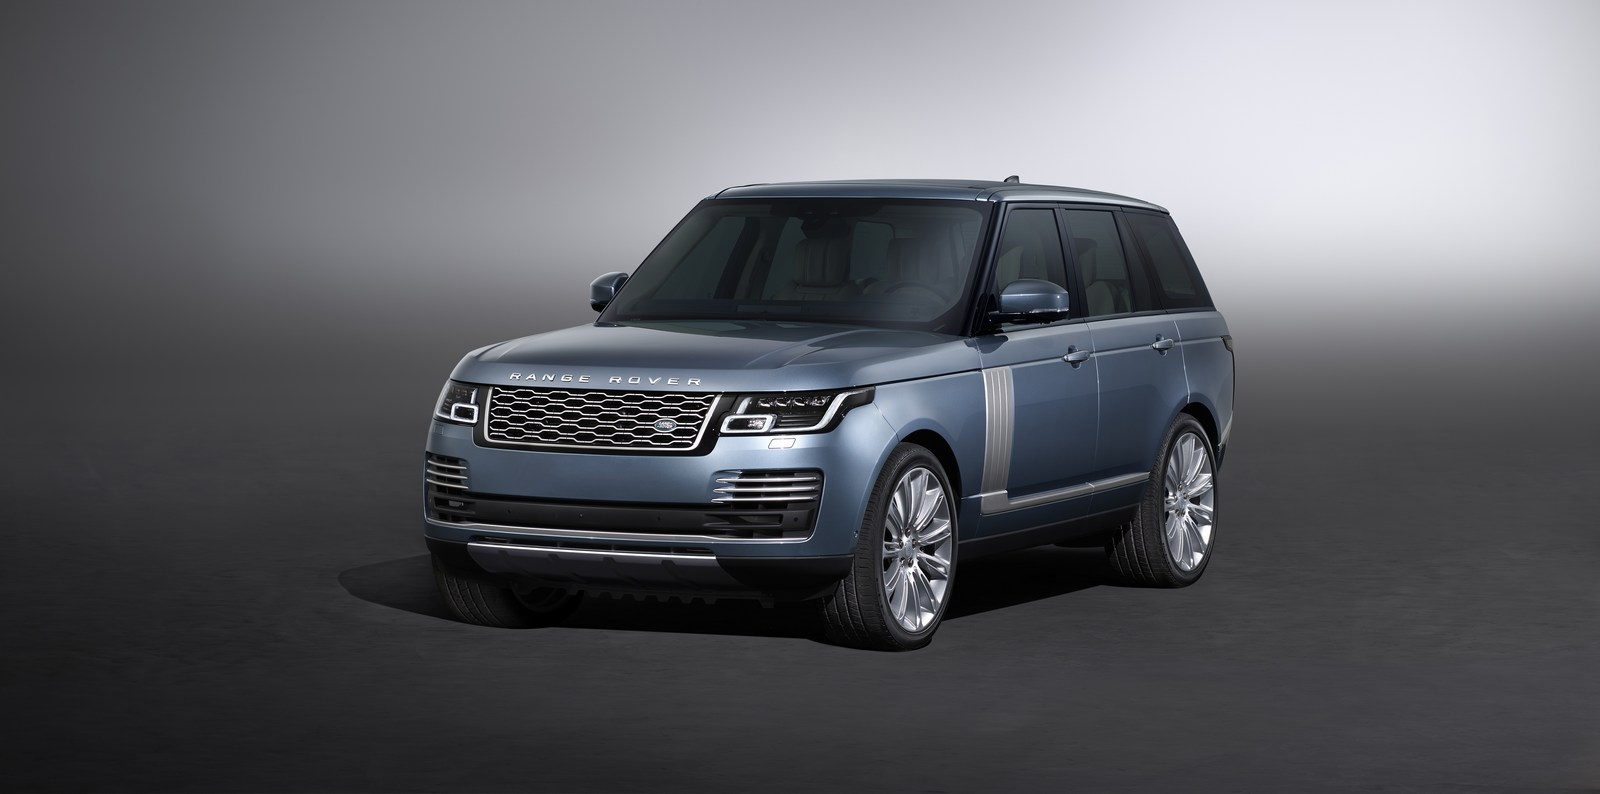 2018 range rover facelift unveiled with new plug in hybrid variant carscoops. Black Bedroom Furniture Sets. Home Design Ideas